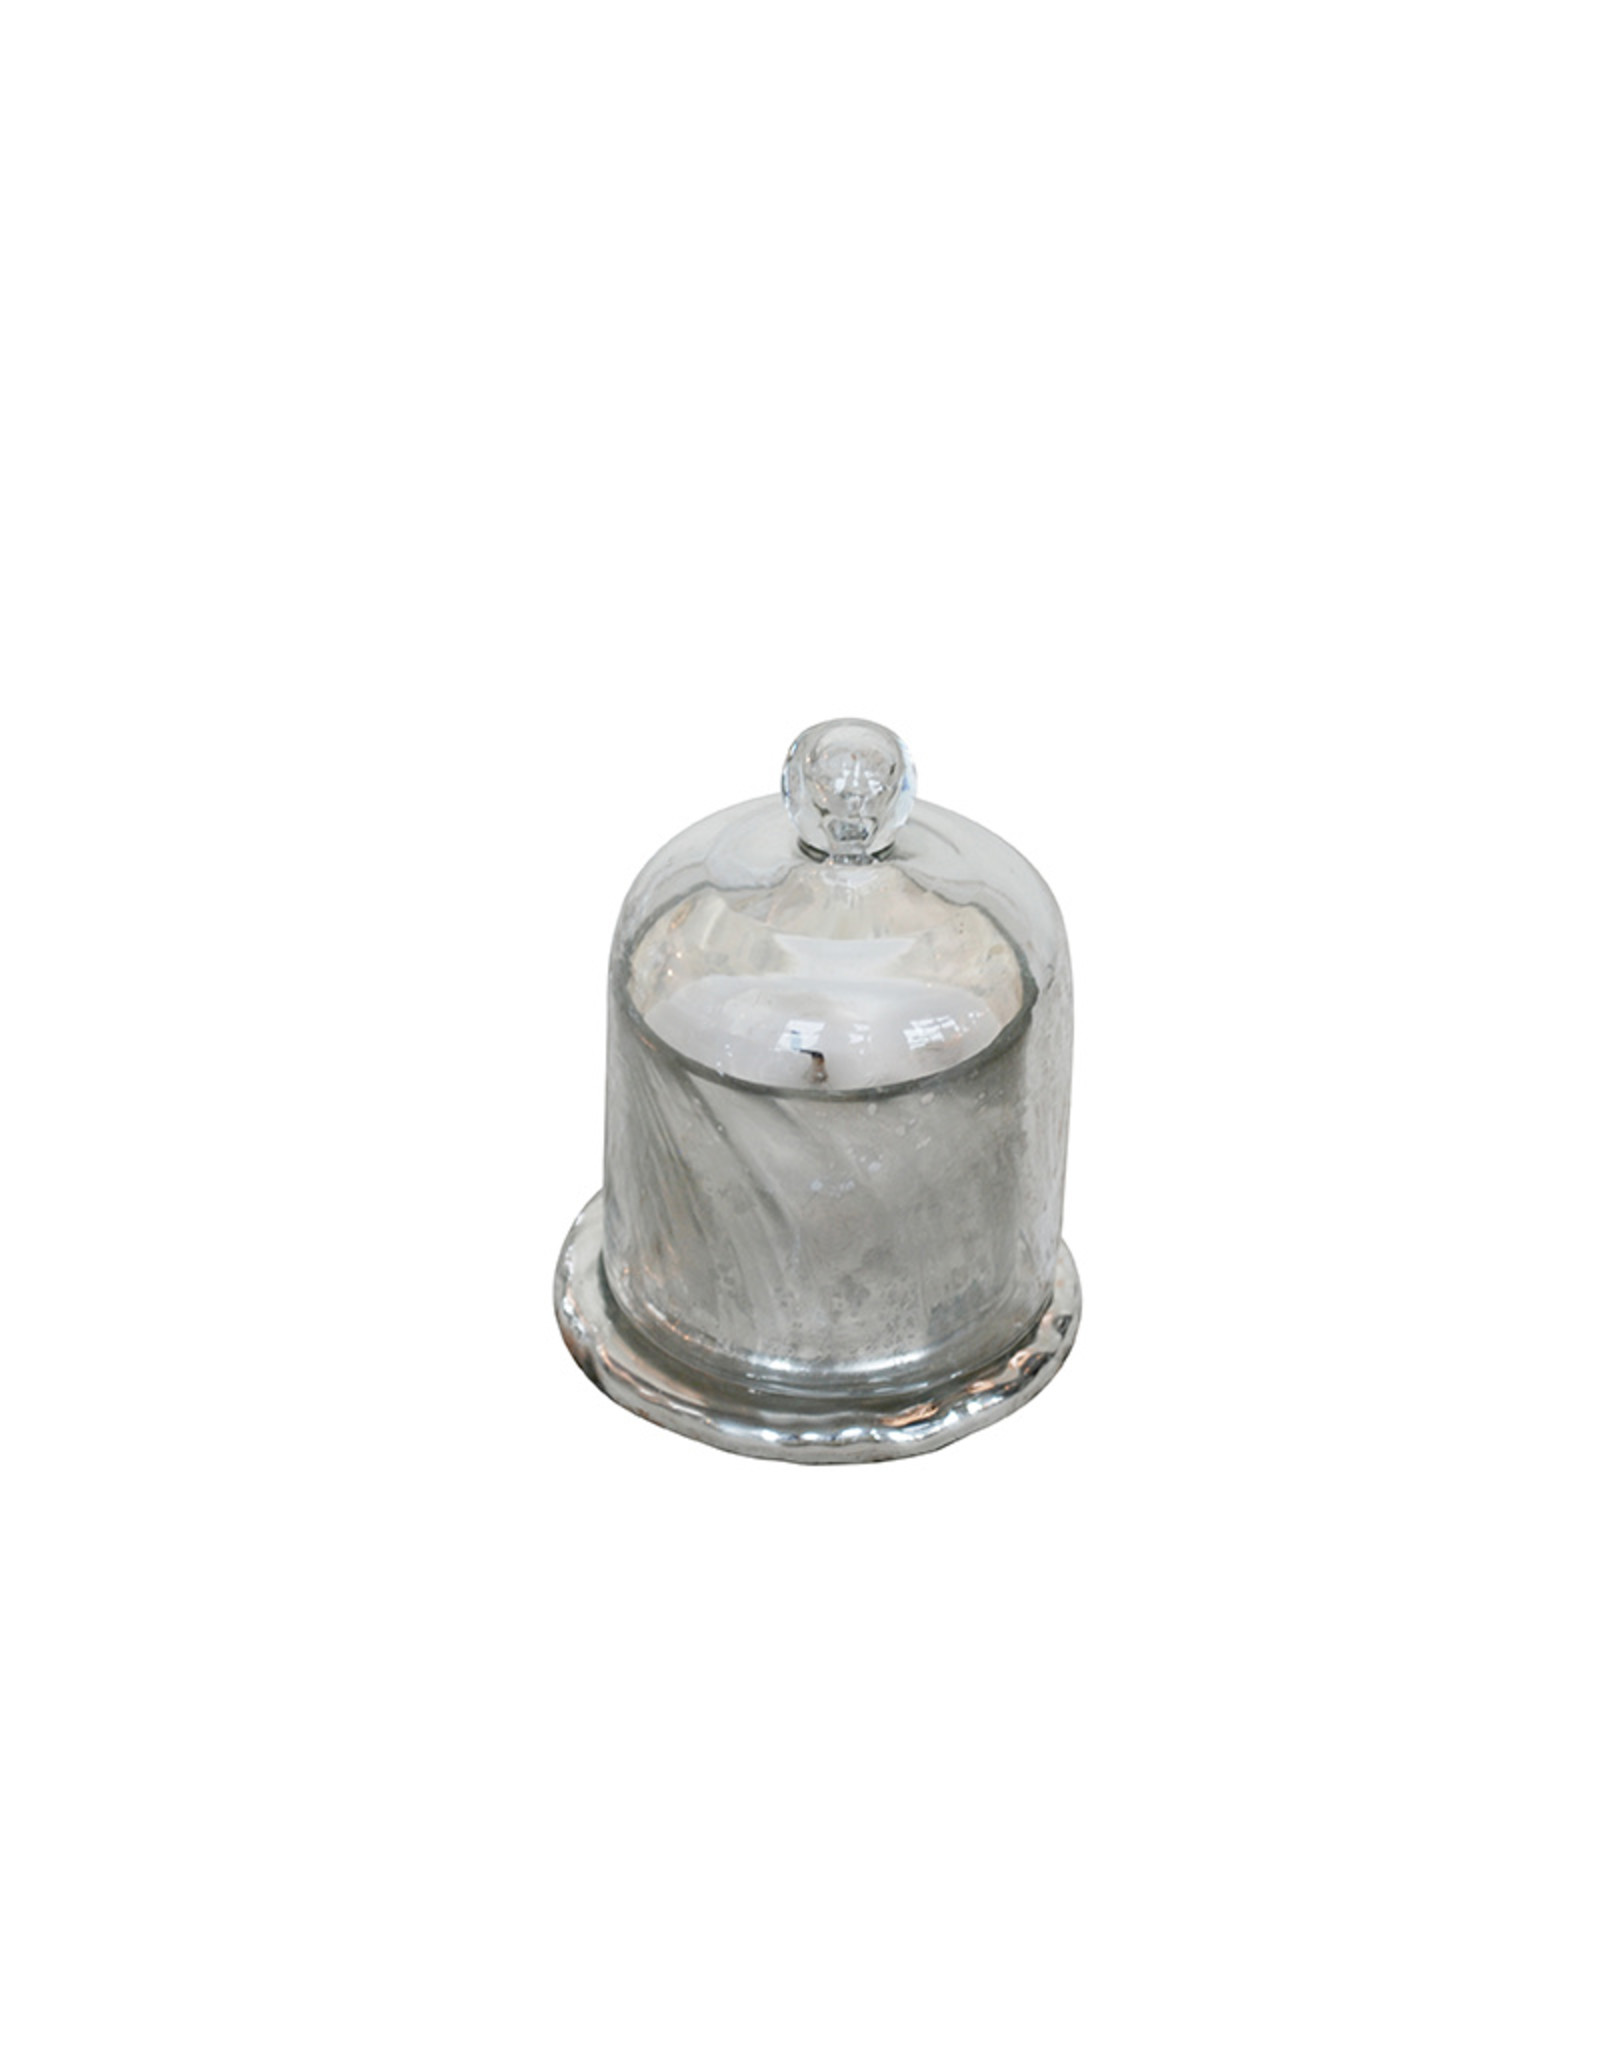 Large candle in antique silver holder in glass